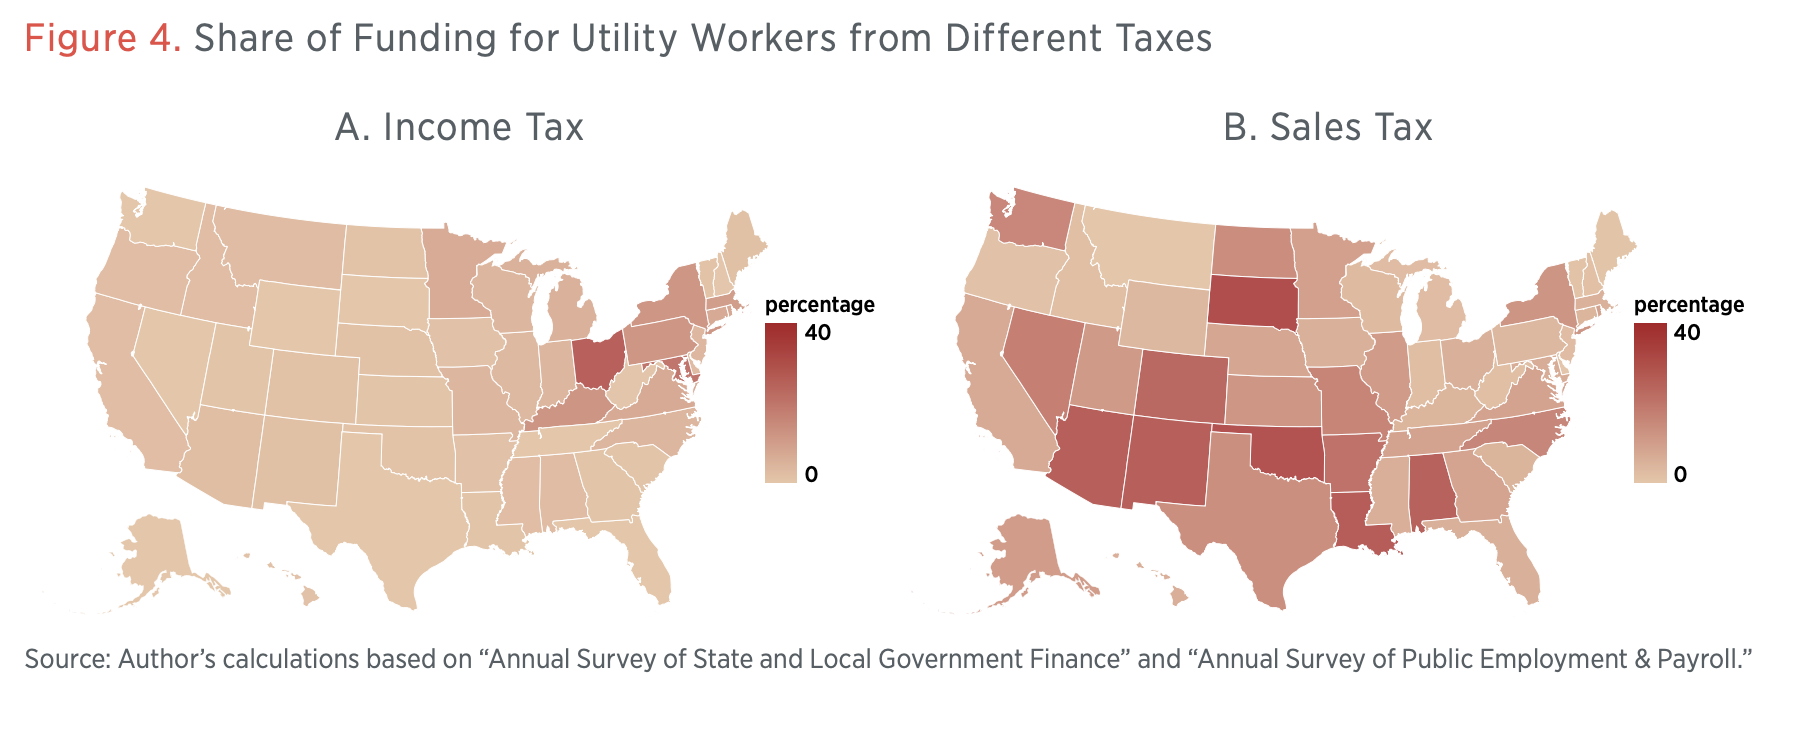 Figure 4. Share of Funding for Utility Workers from Different Taxes